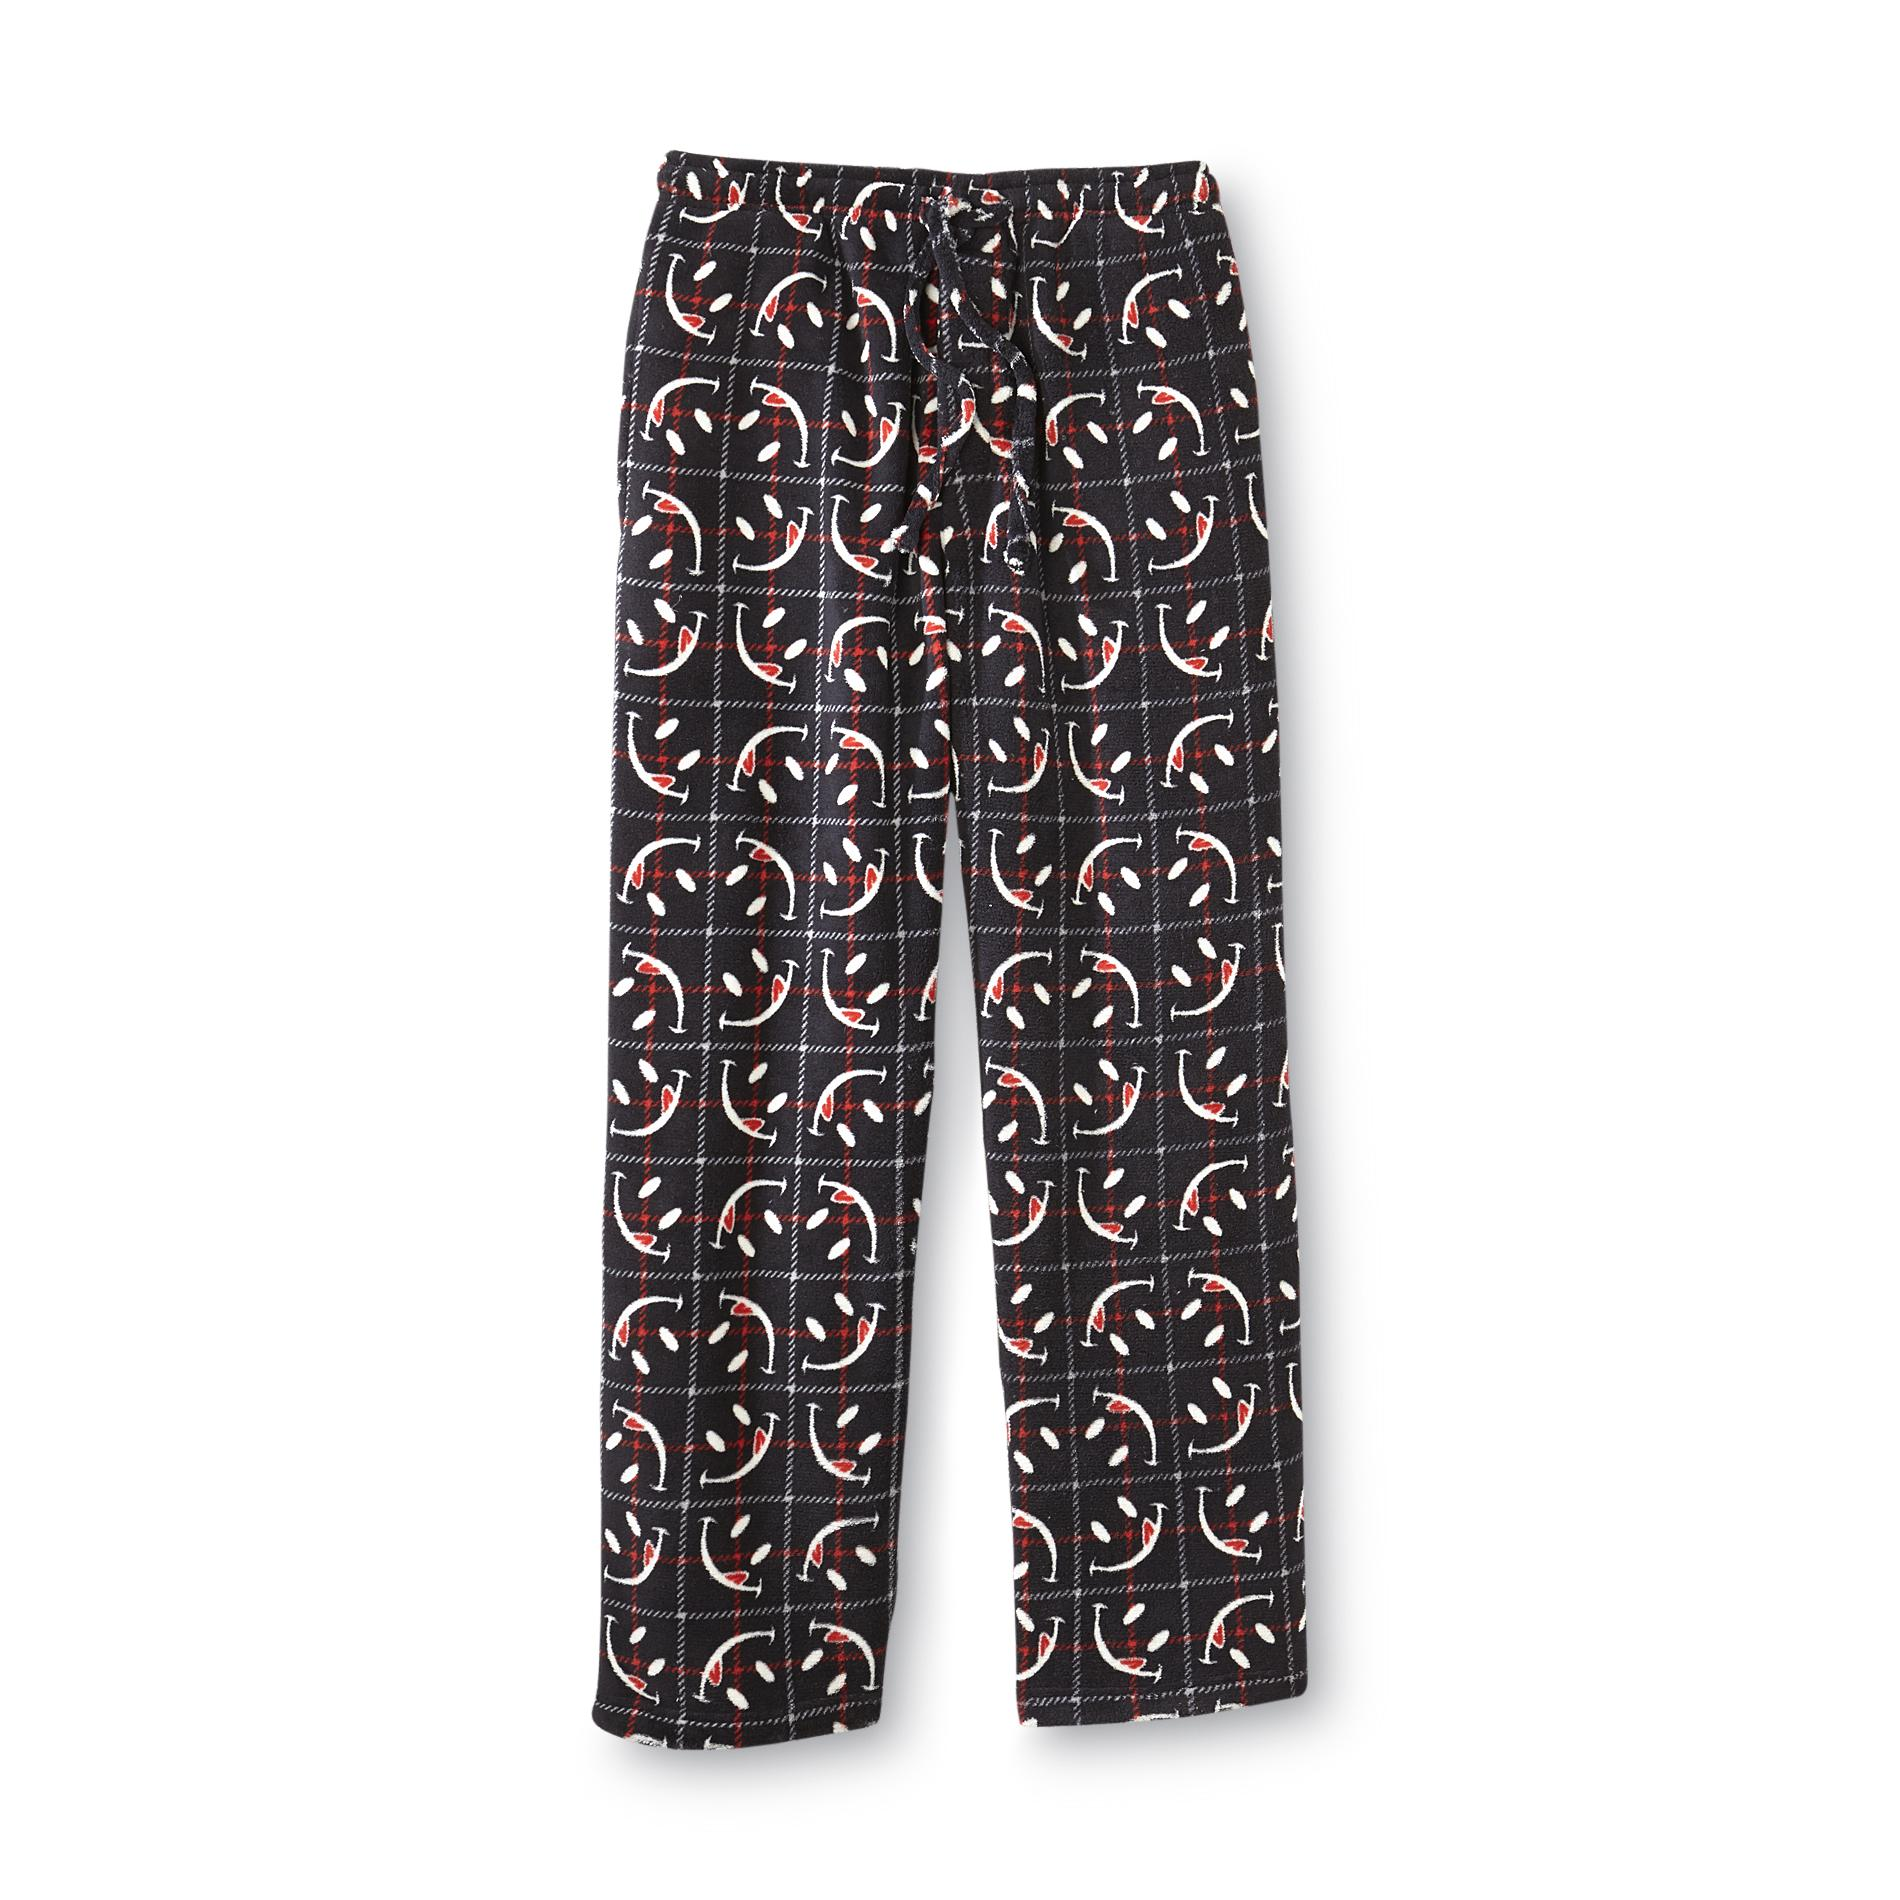 Joe Boxer Men's Fleece Pajama Pants - Windowpane at Kmart.com